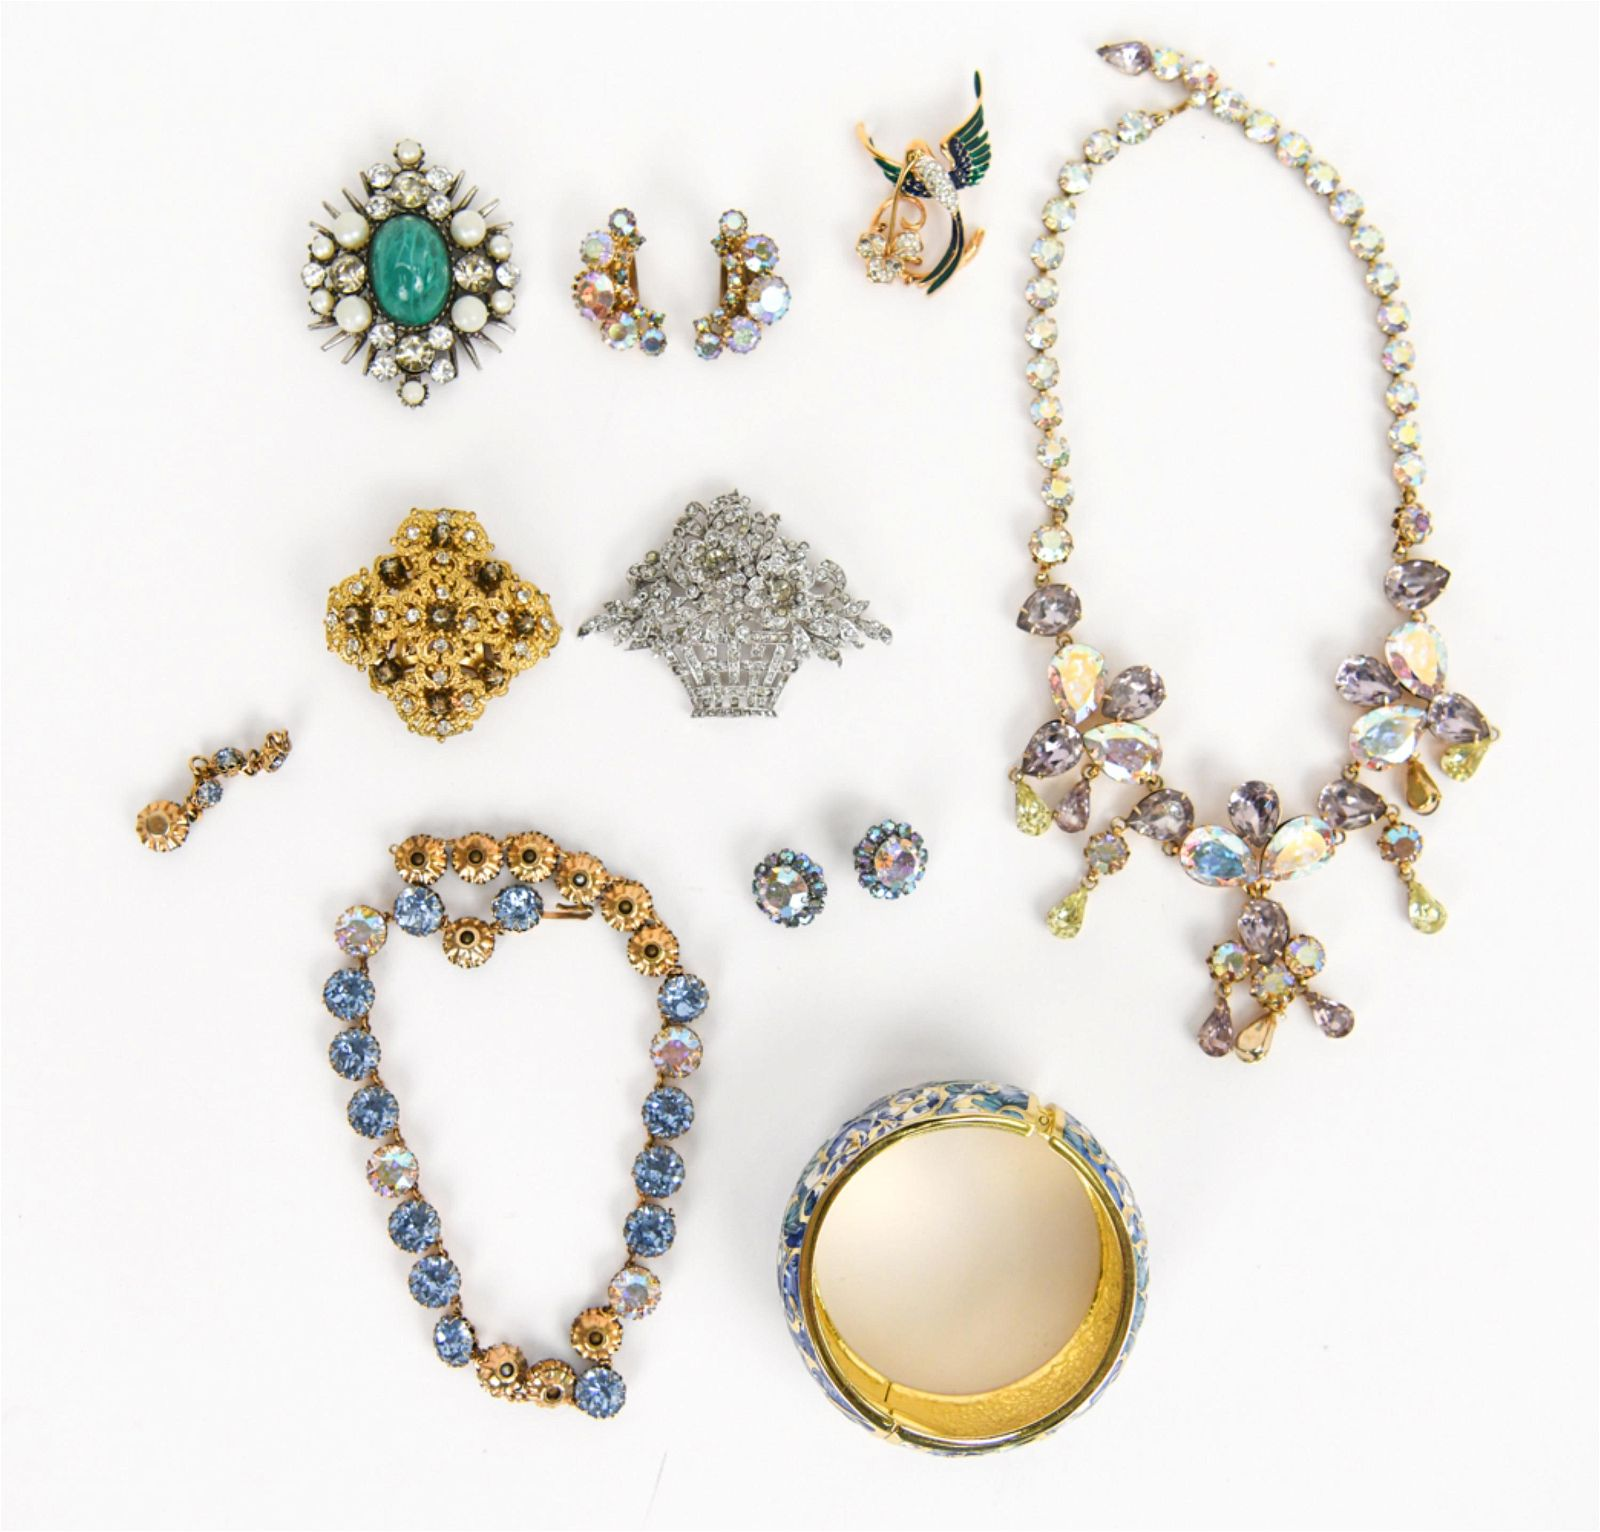 VINTAGE COSTUME JEWELRY INCL. AUSTRIAN CRYSTAL